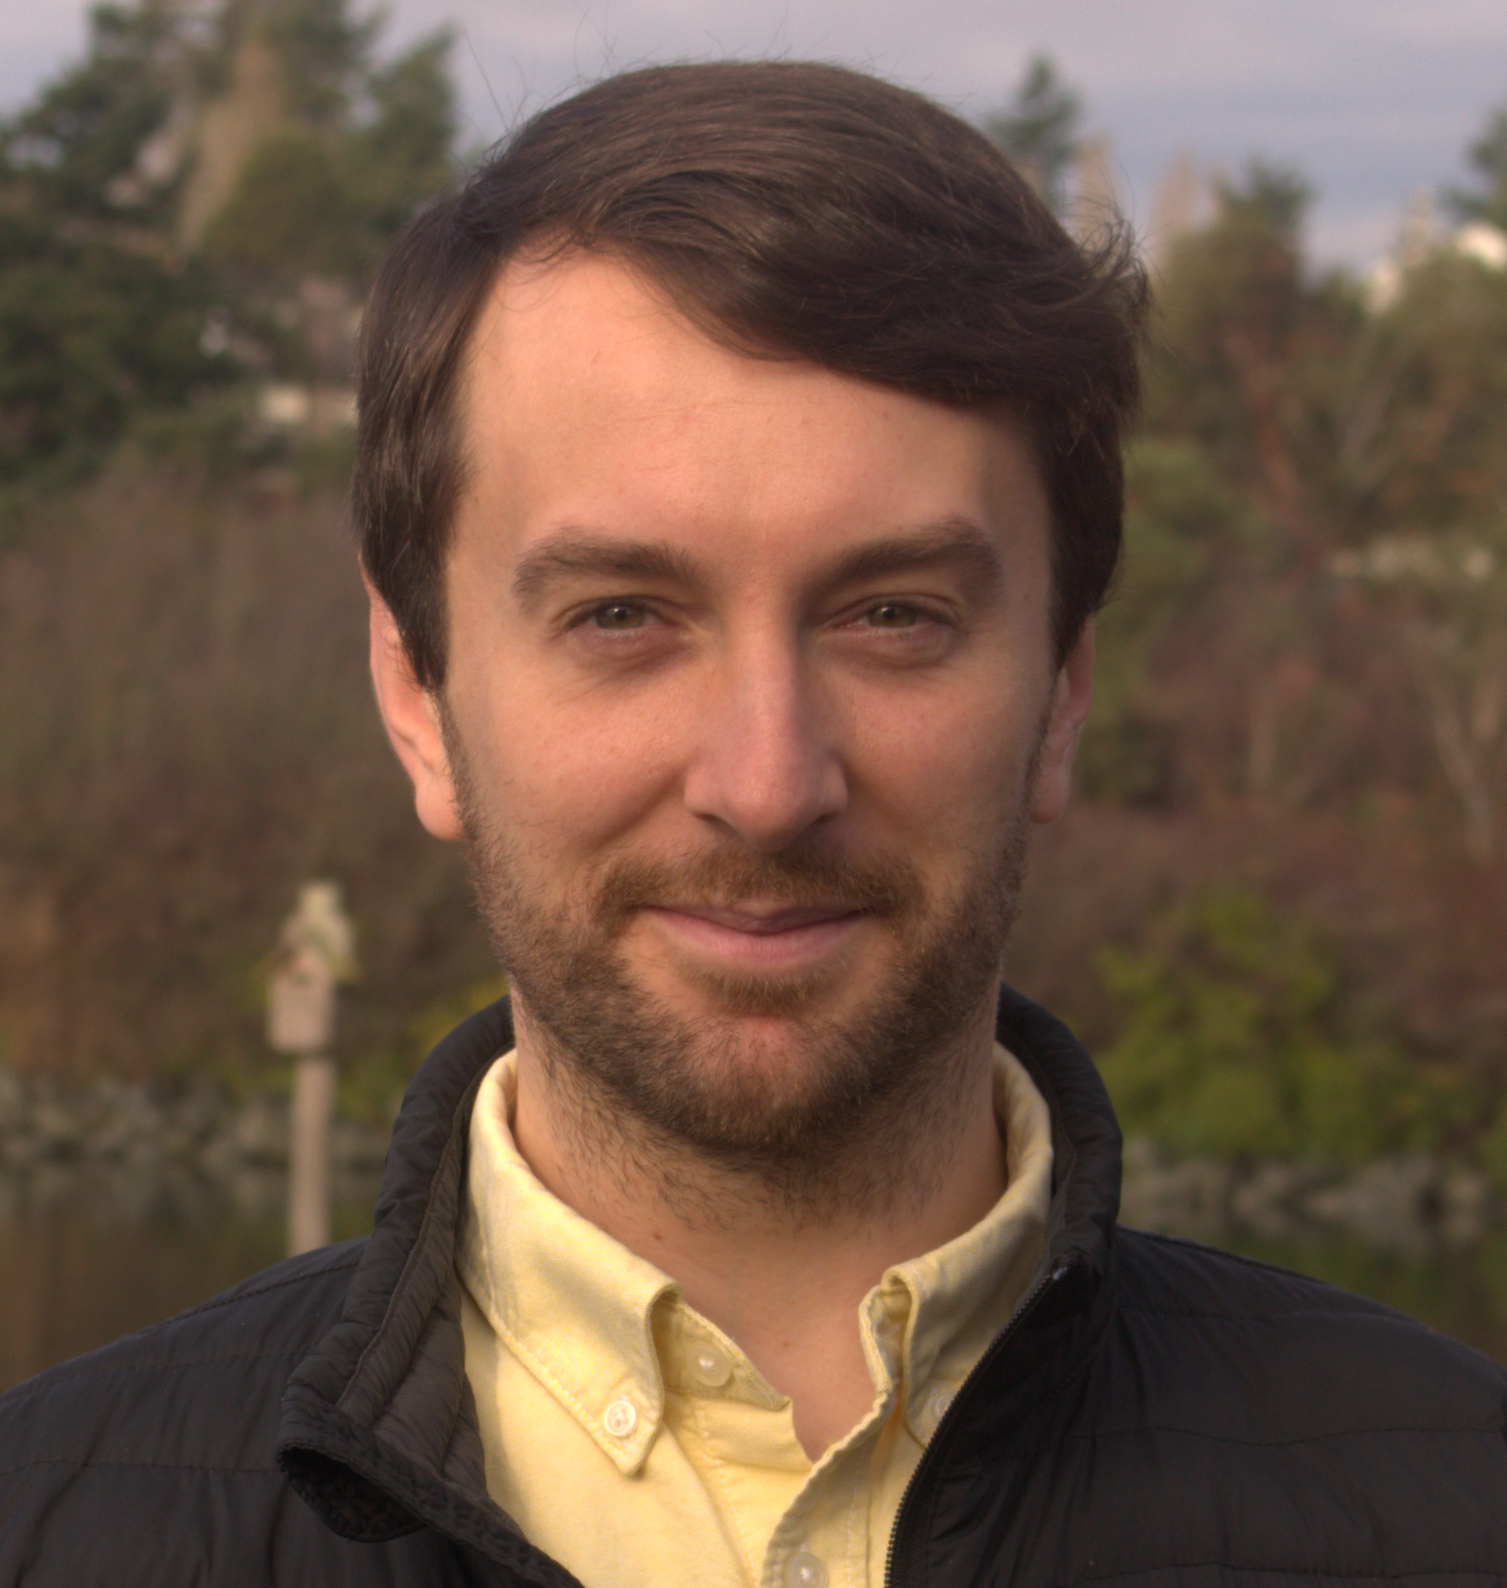 Kyle Empringham, co-founder and director of finance and fundraising